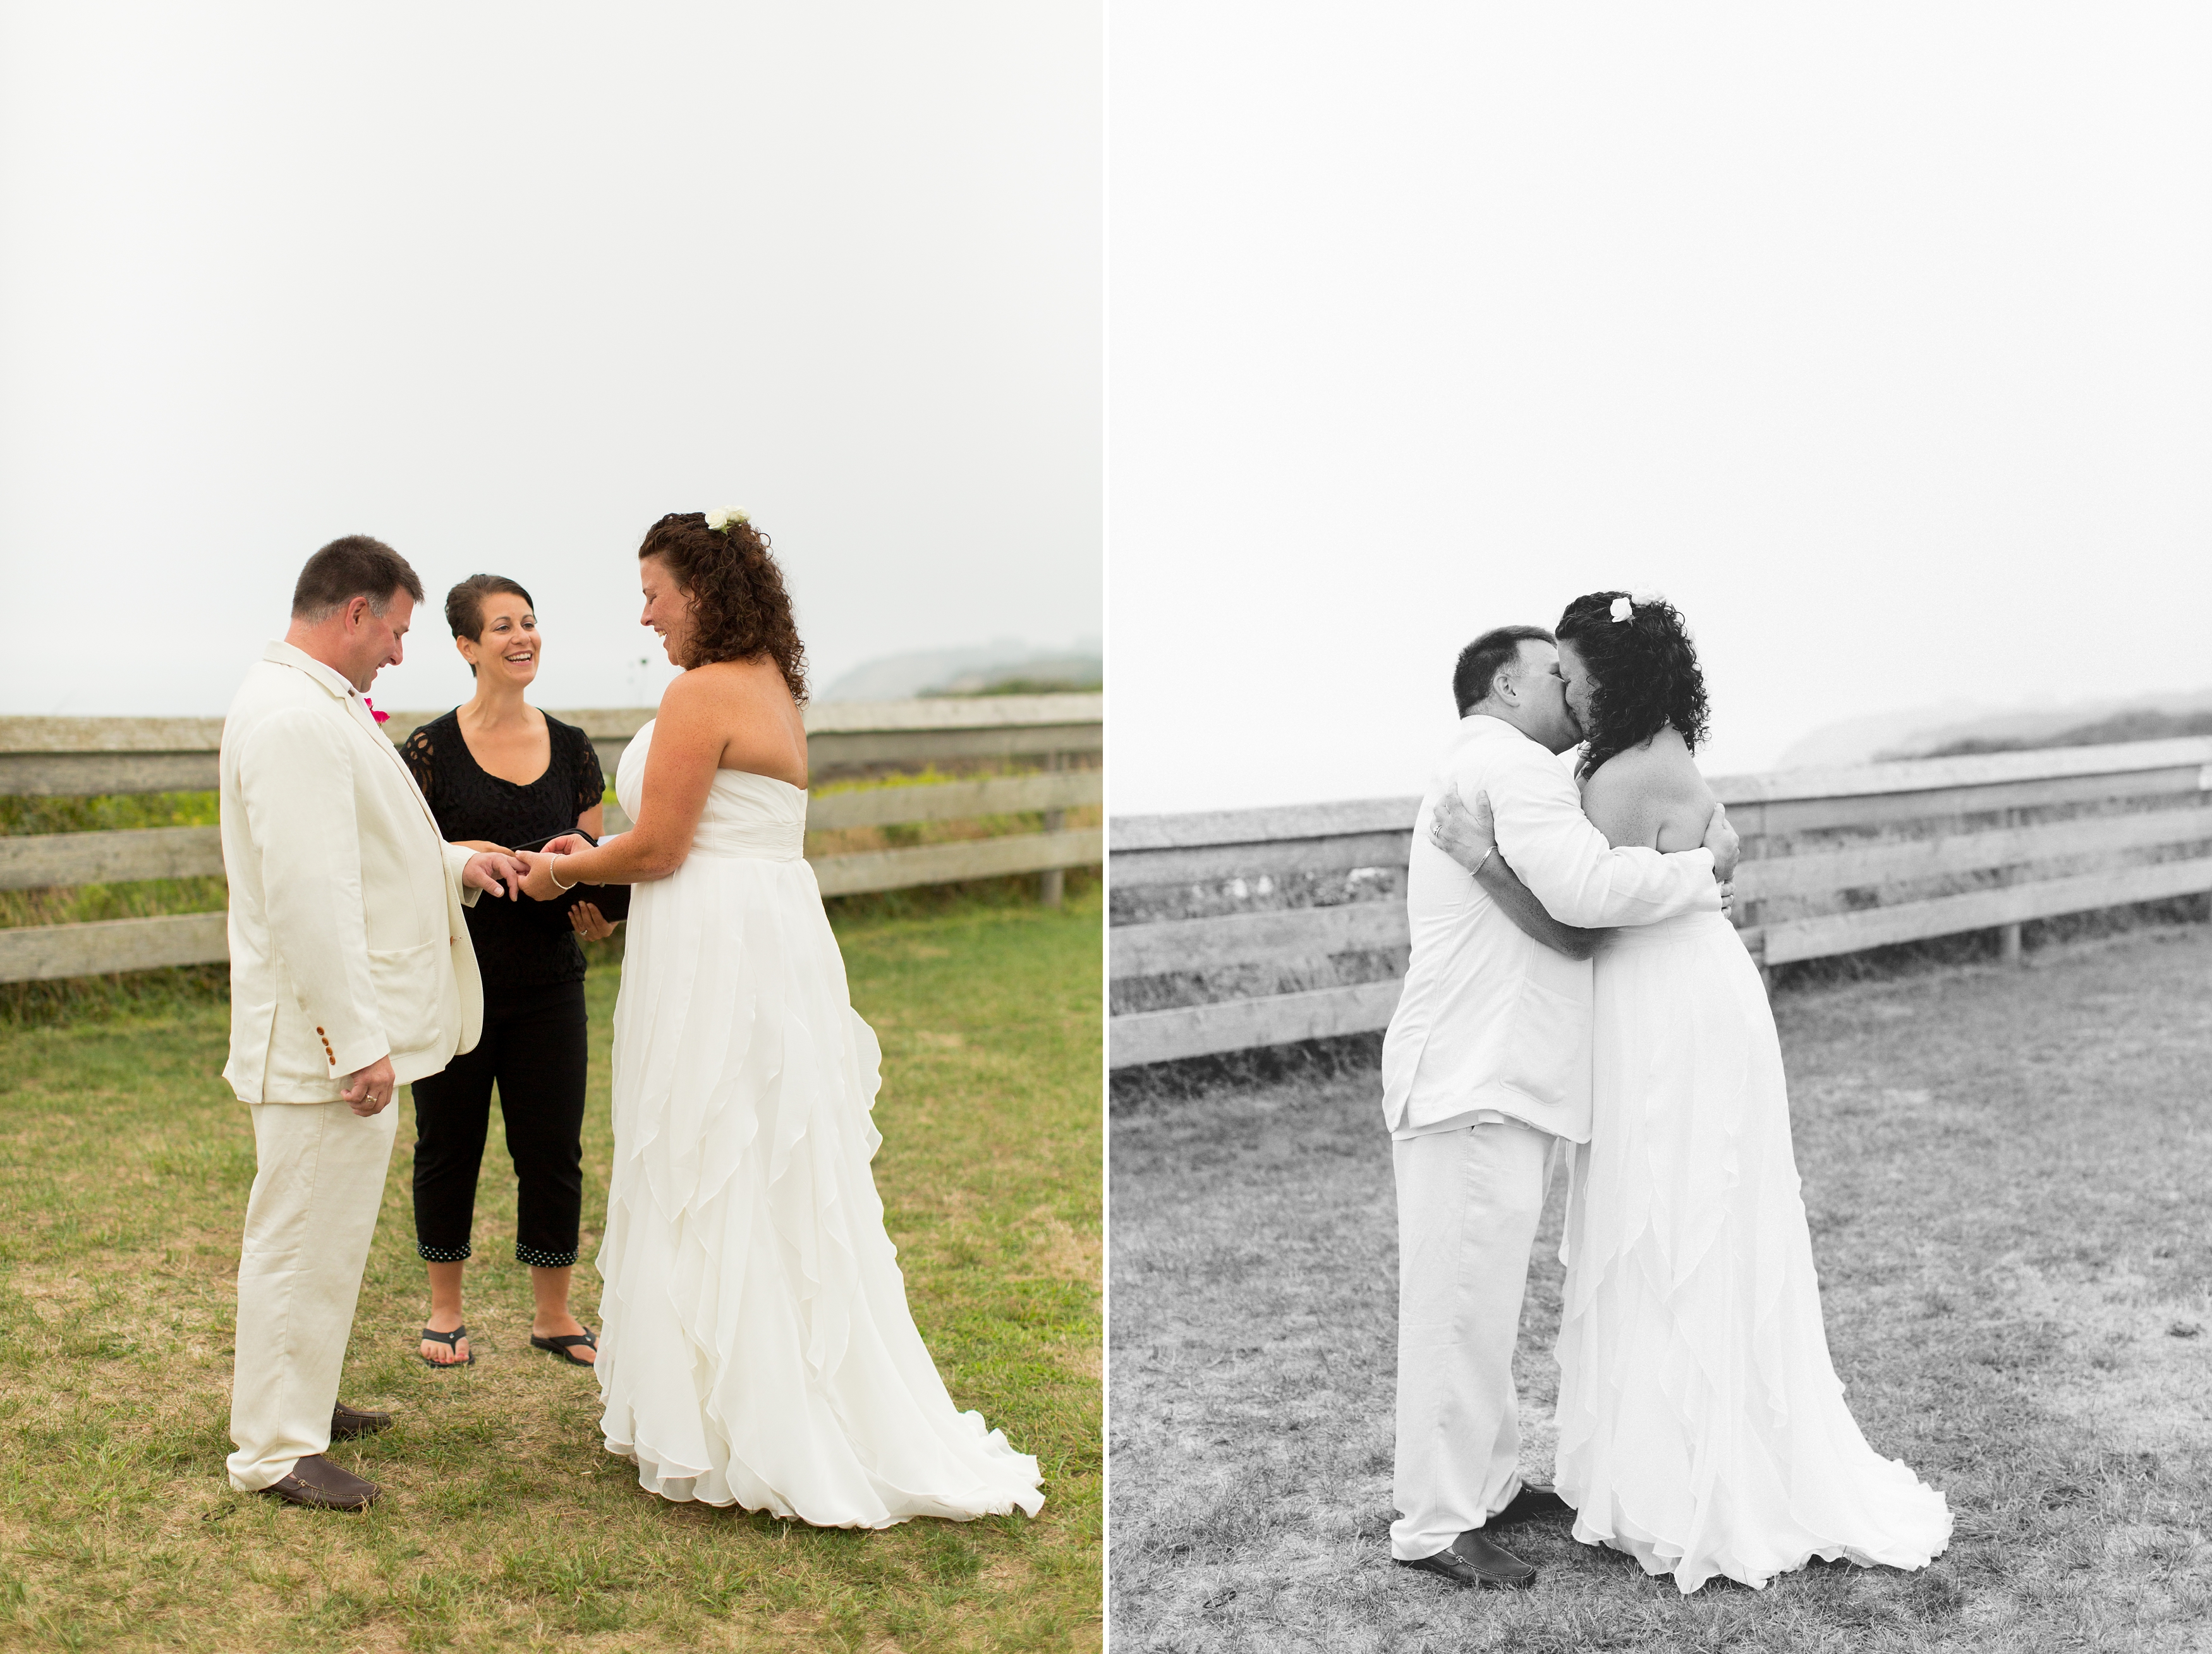 allegra_anderson_photography_block_island_rhode_island_wedding_photographer_spring_house_odell_2016177